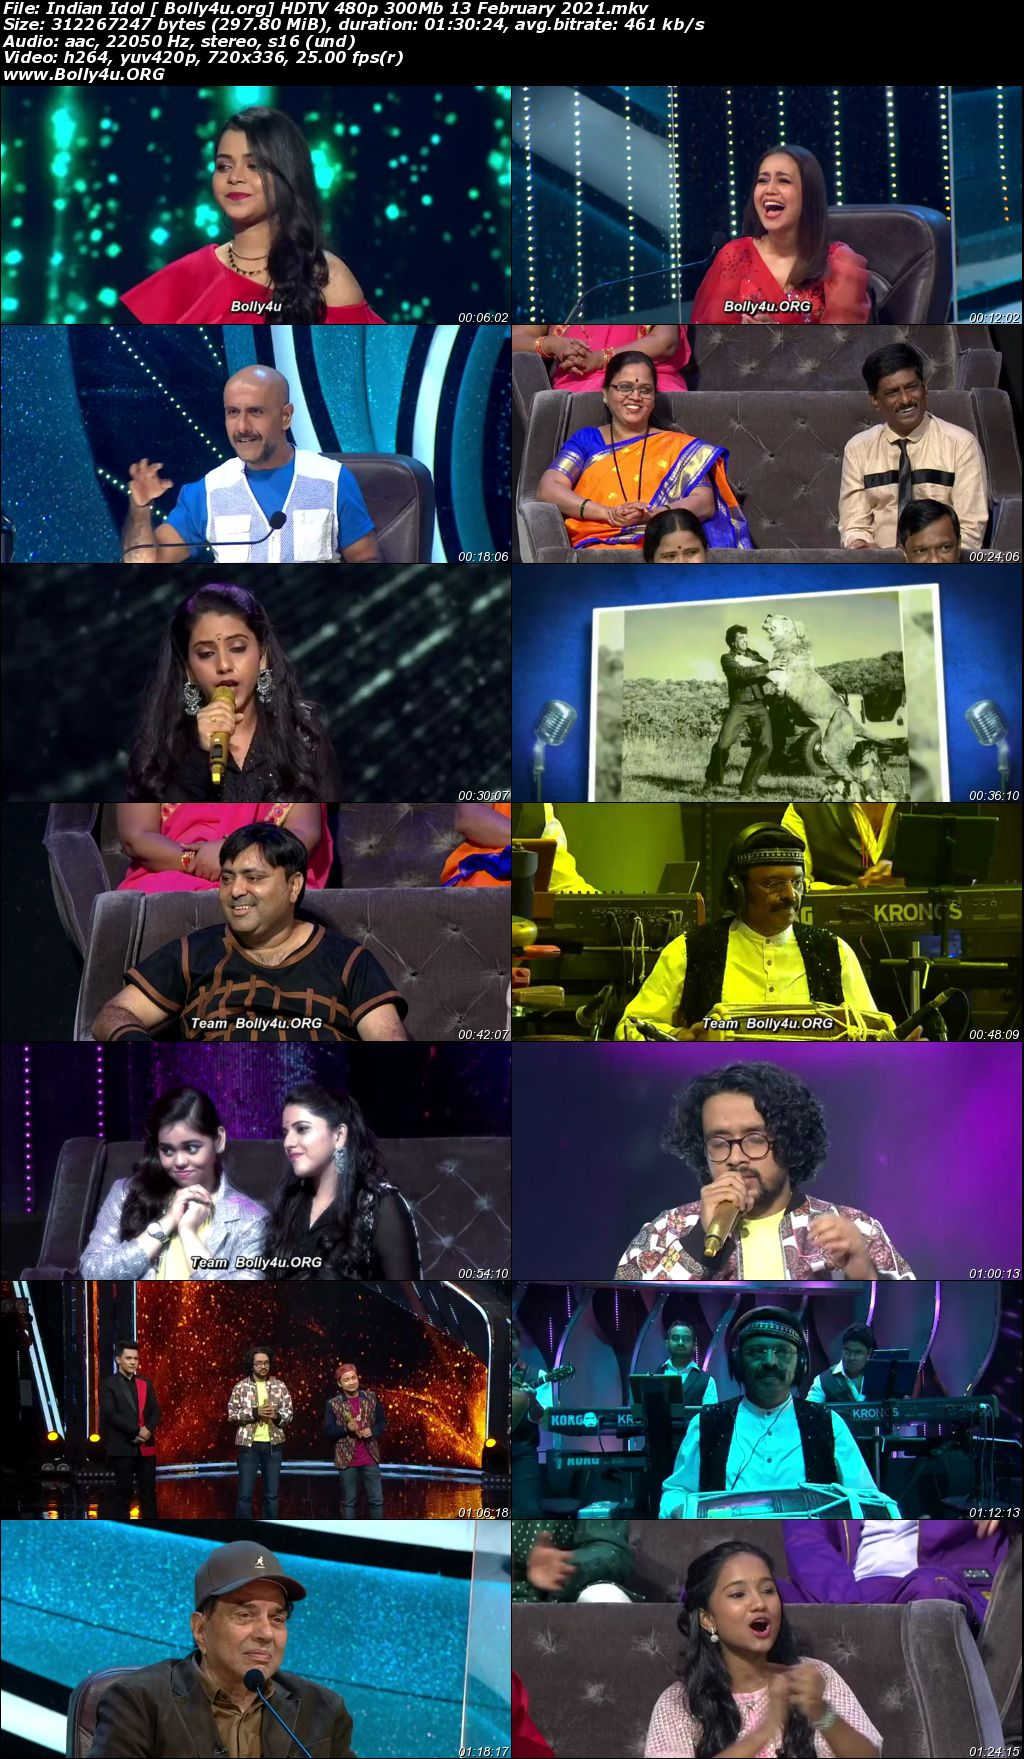 Indian Idol 2021 HDTV 480p 300Mb 13 February 2021 Download